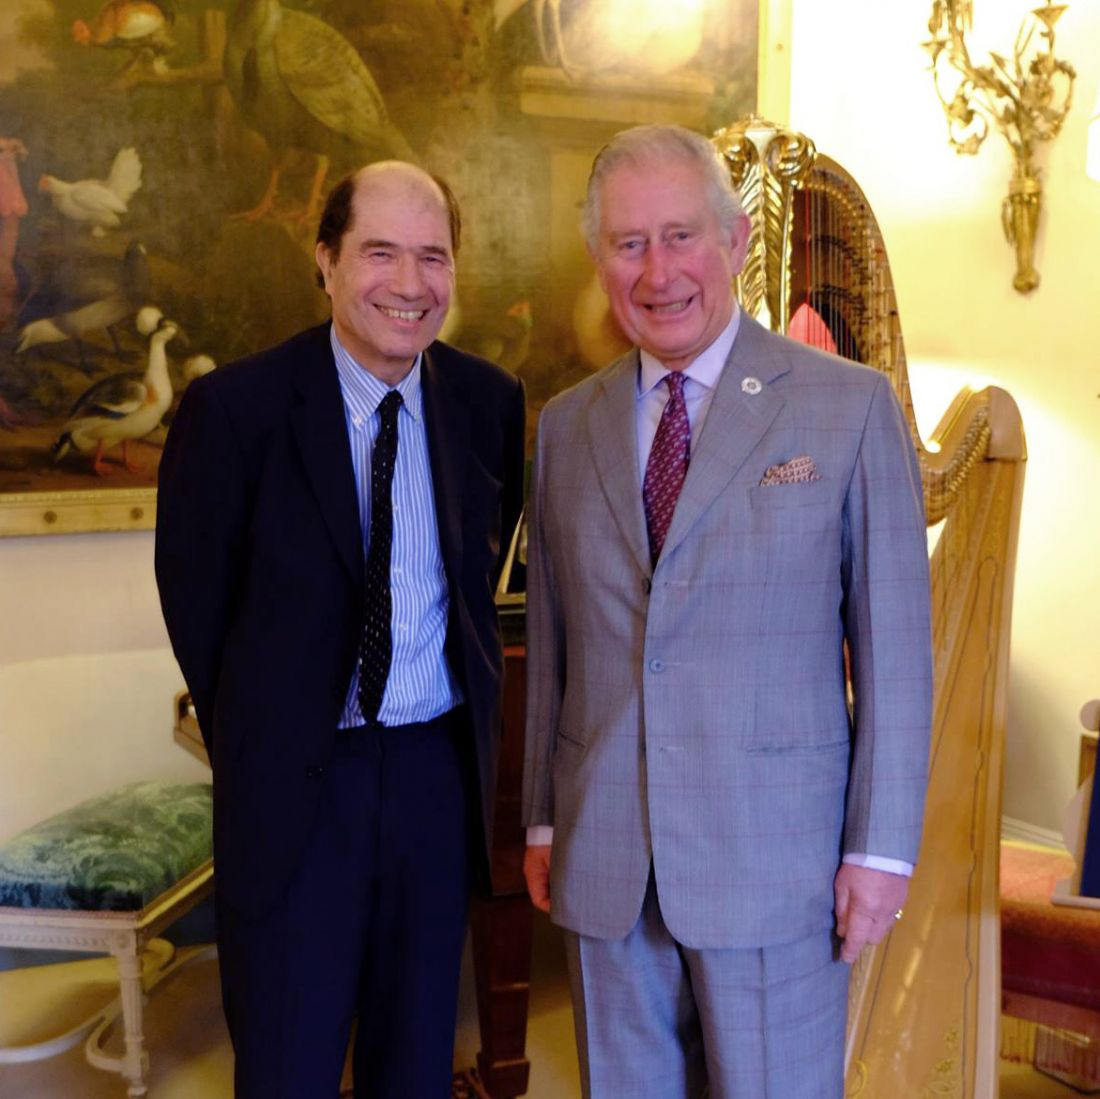 Michael Berkeley (left) with His Royal Highness the Prince of Wales